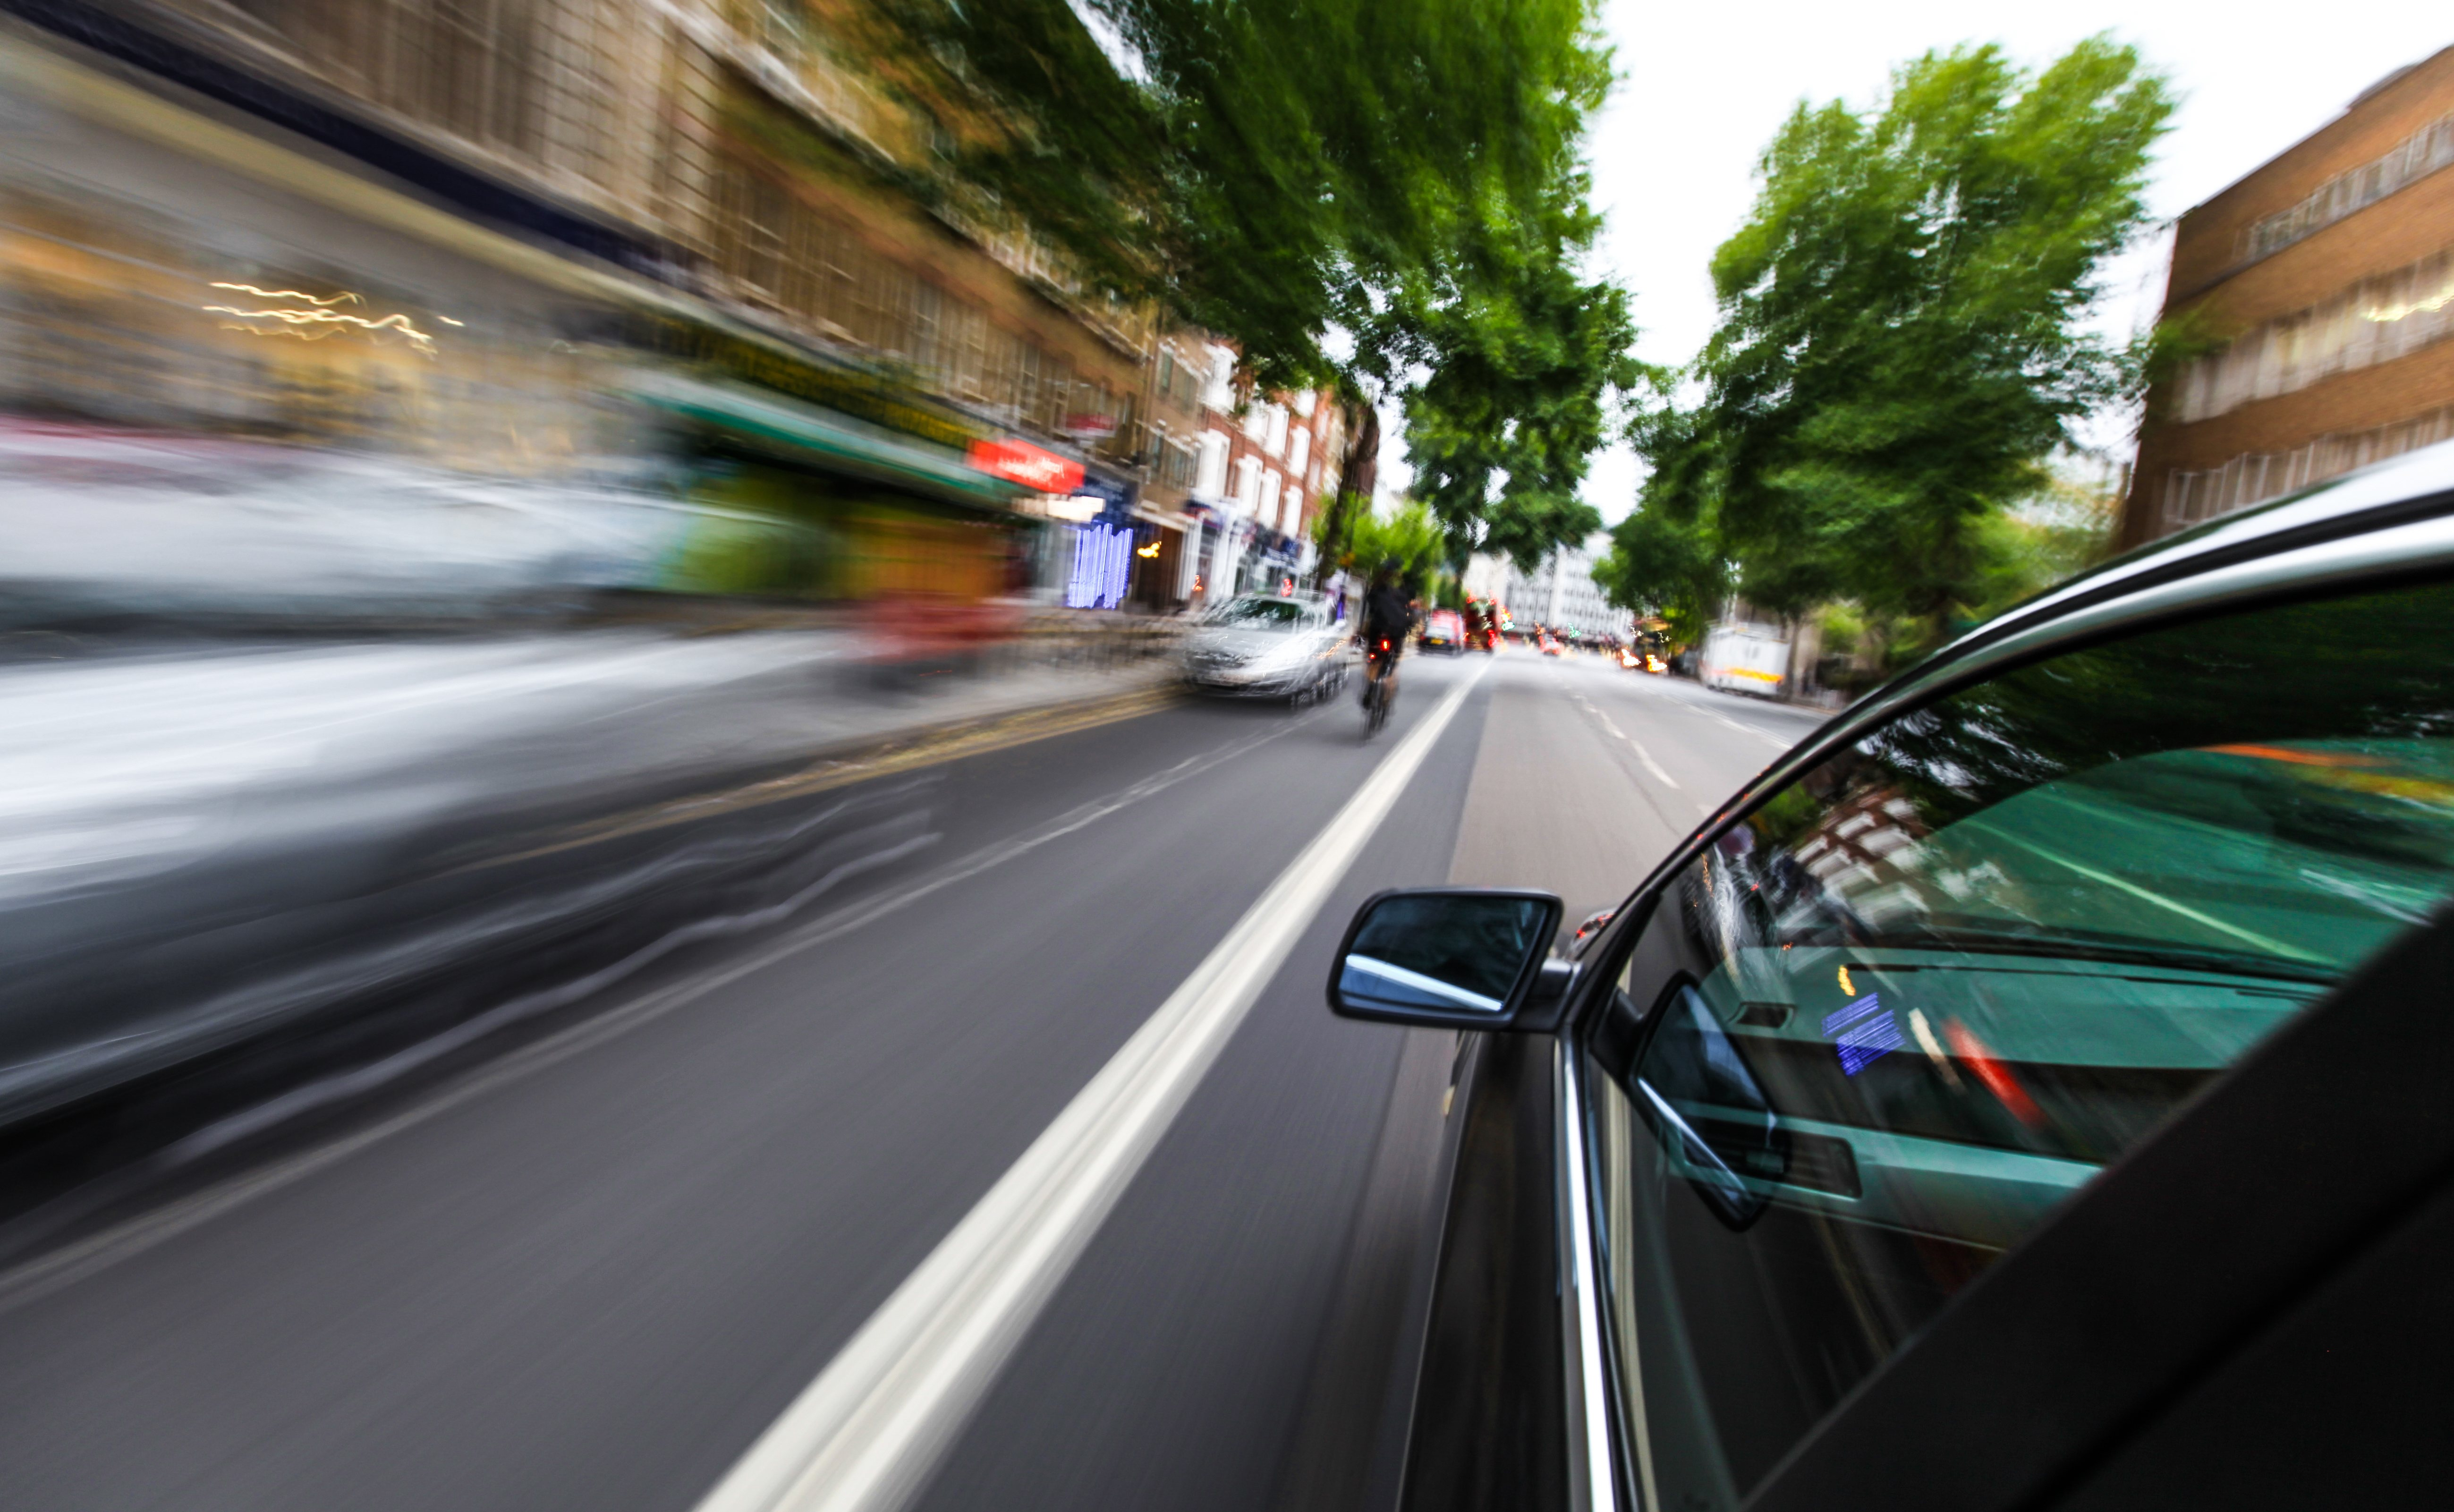 Are there Lawful Reasons for Speeding? | The Ticket Clinic